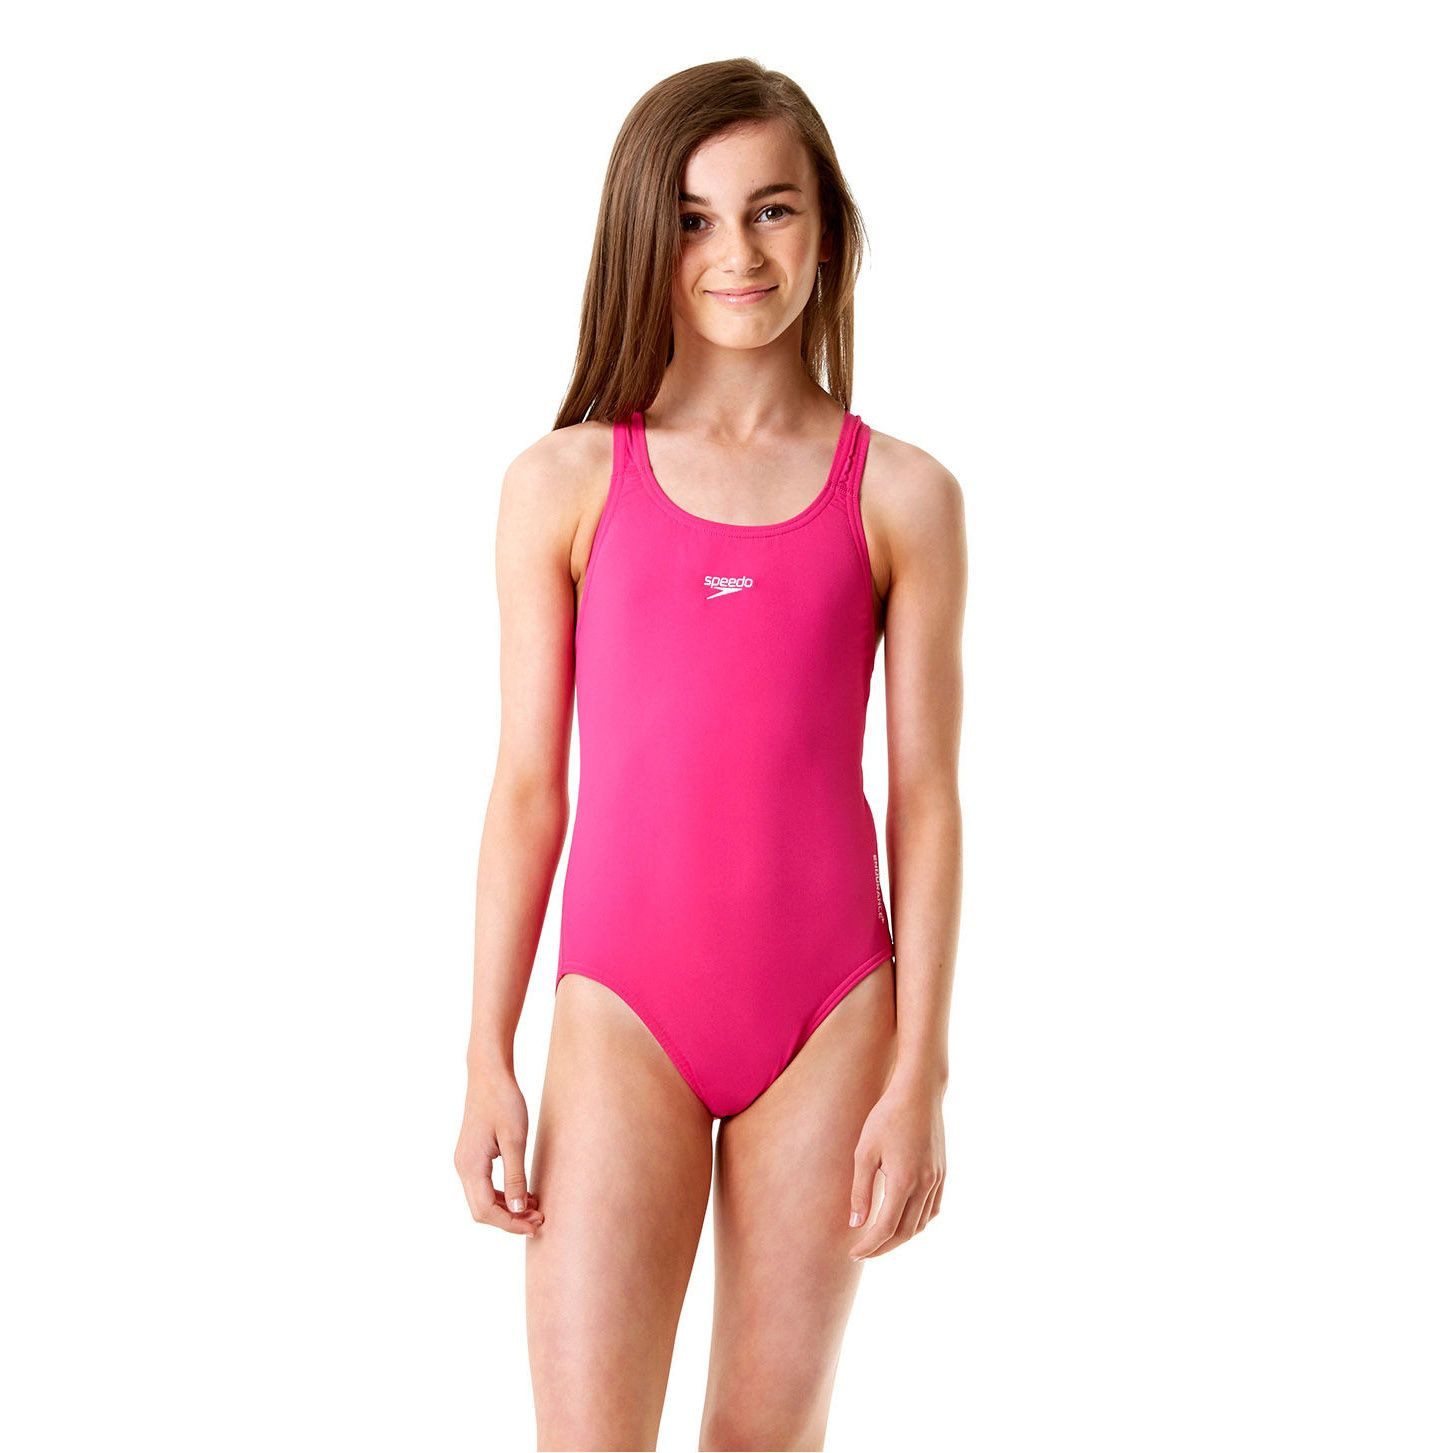 Product - Swimsuits for Girls, Coxeer Summer Cute Bathing Suits One Piece Swimsuit Cartoon Animal Printed Swimwear with Cap Beach Wear for Kids Children Product Image Price.